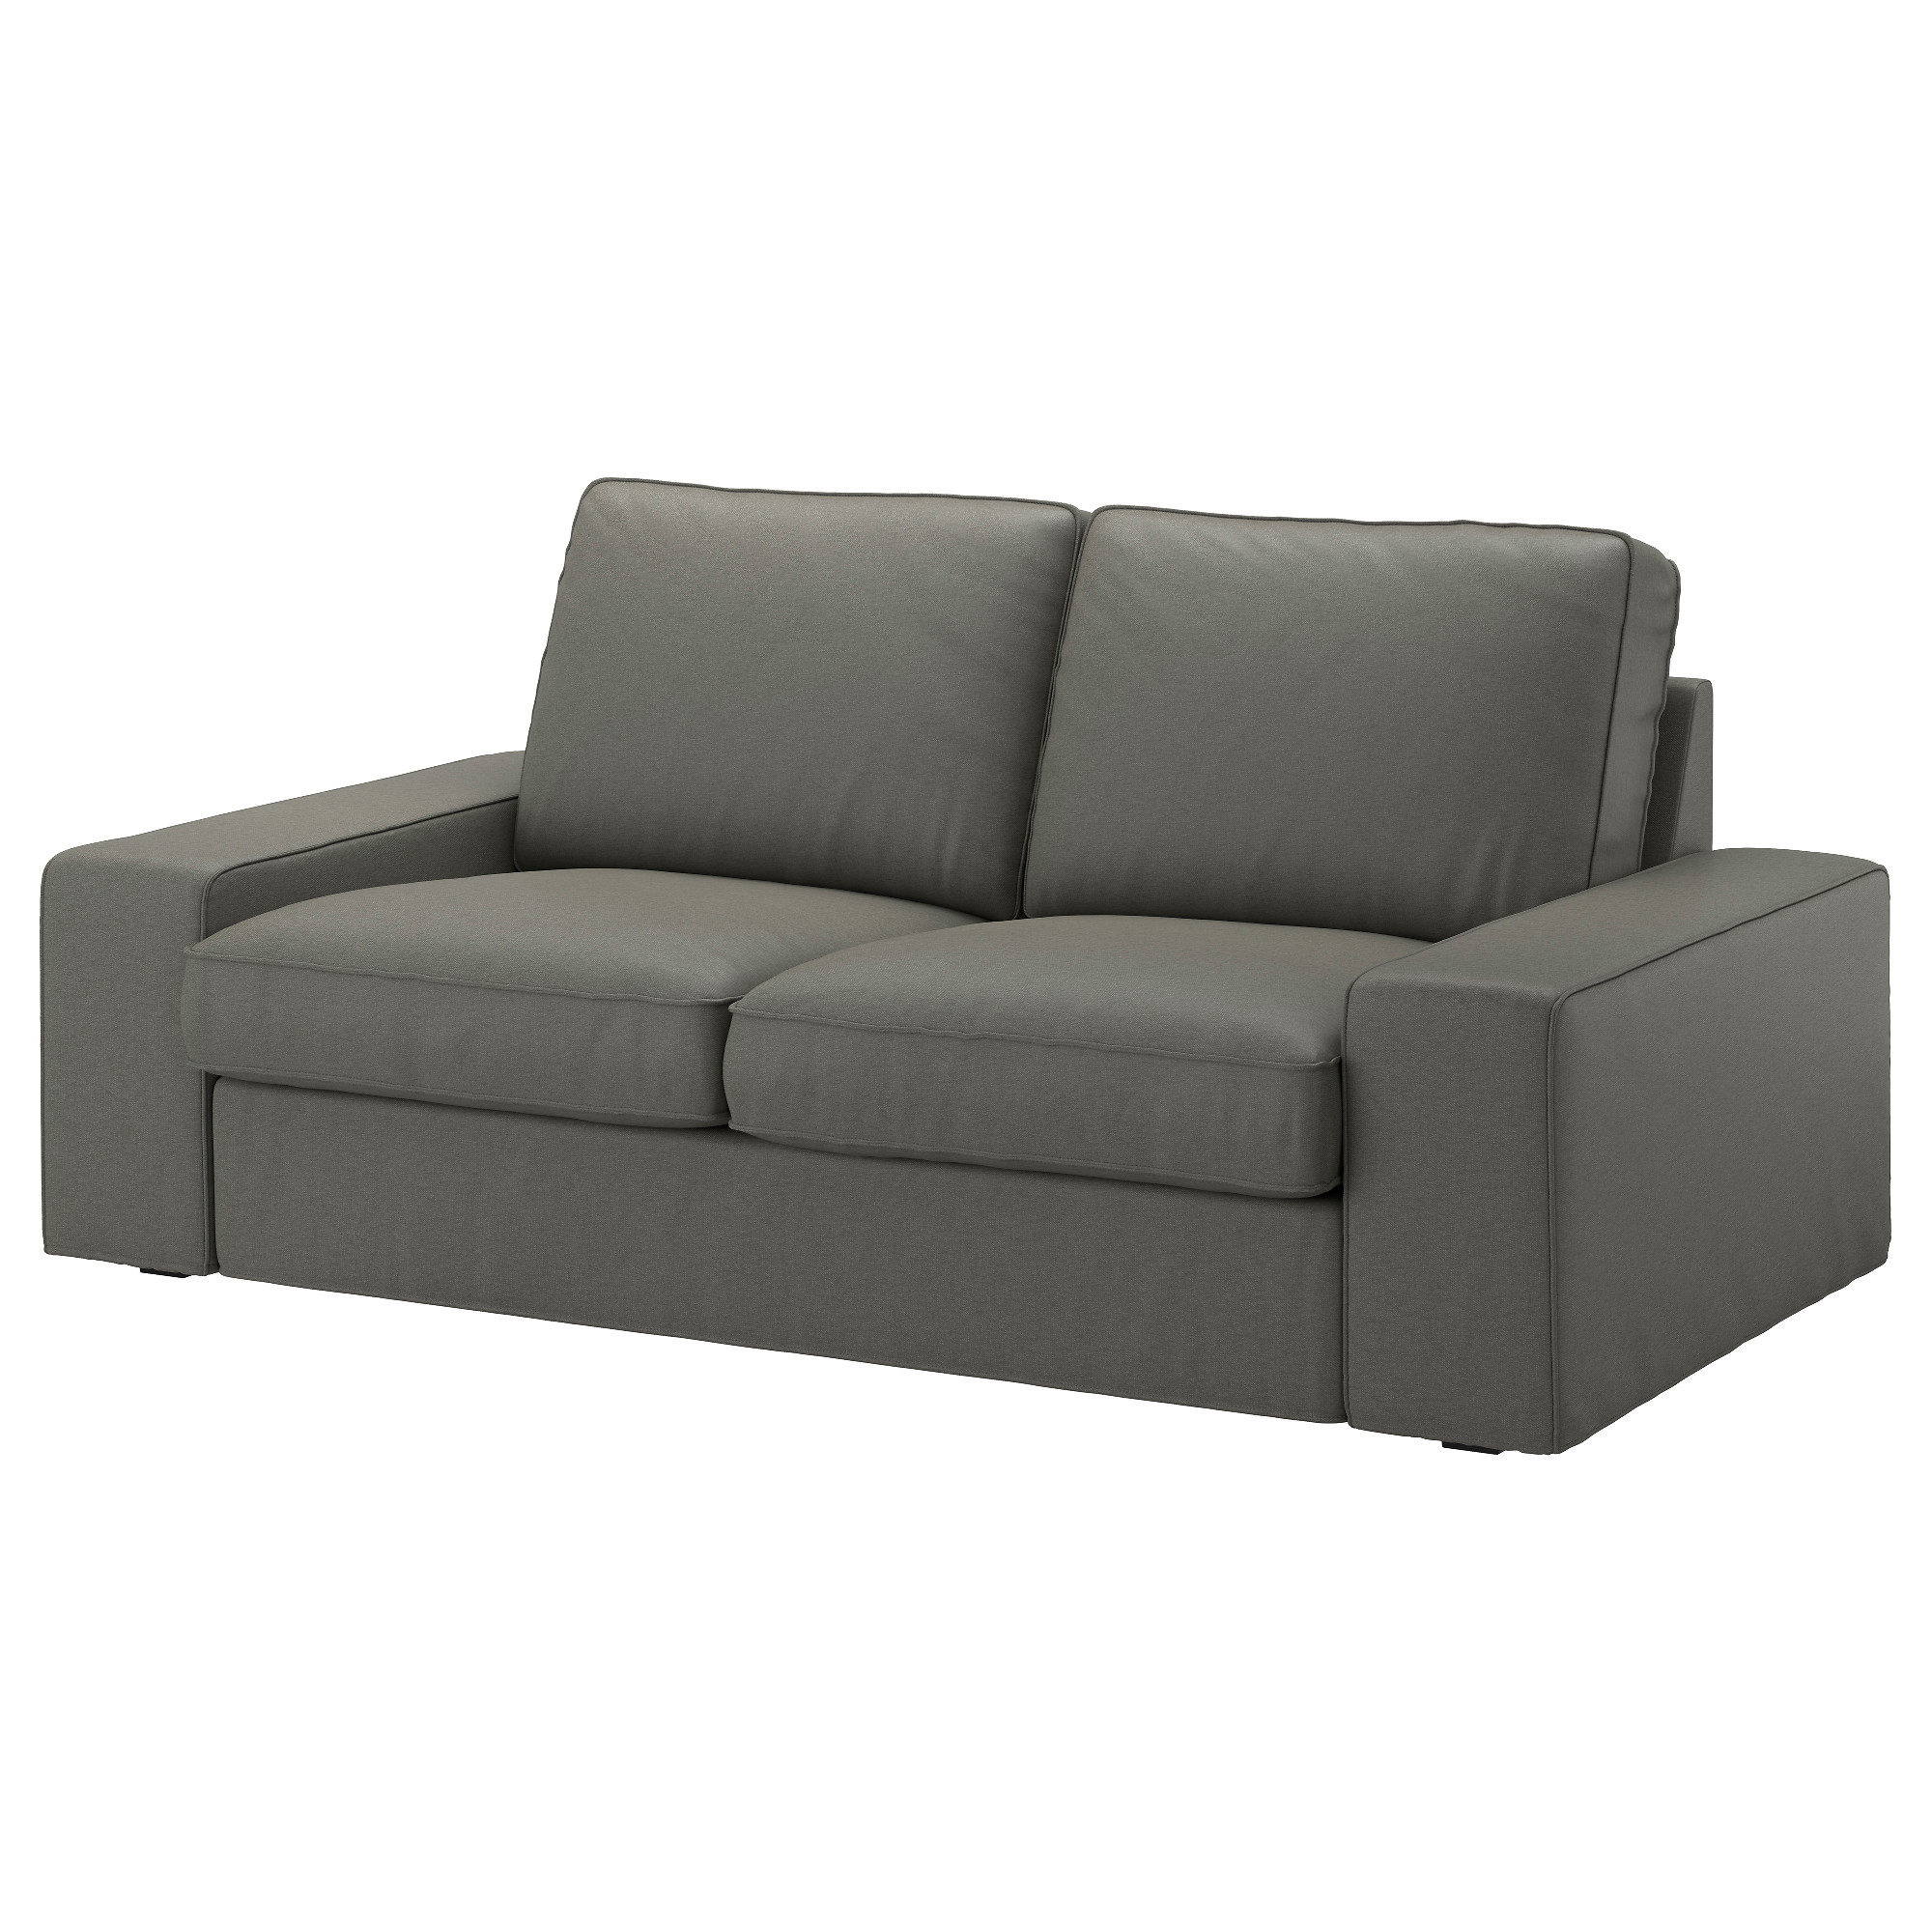 Sofa ikea klippan  KIVIK Two-seat sofa - Hillared dark blue - IKEA